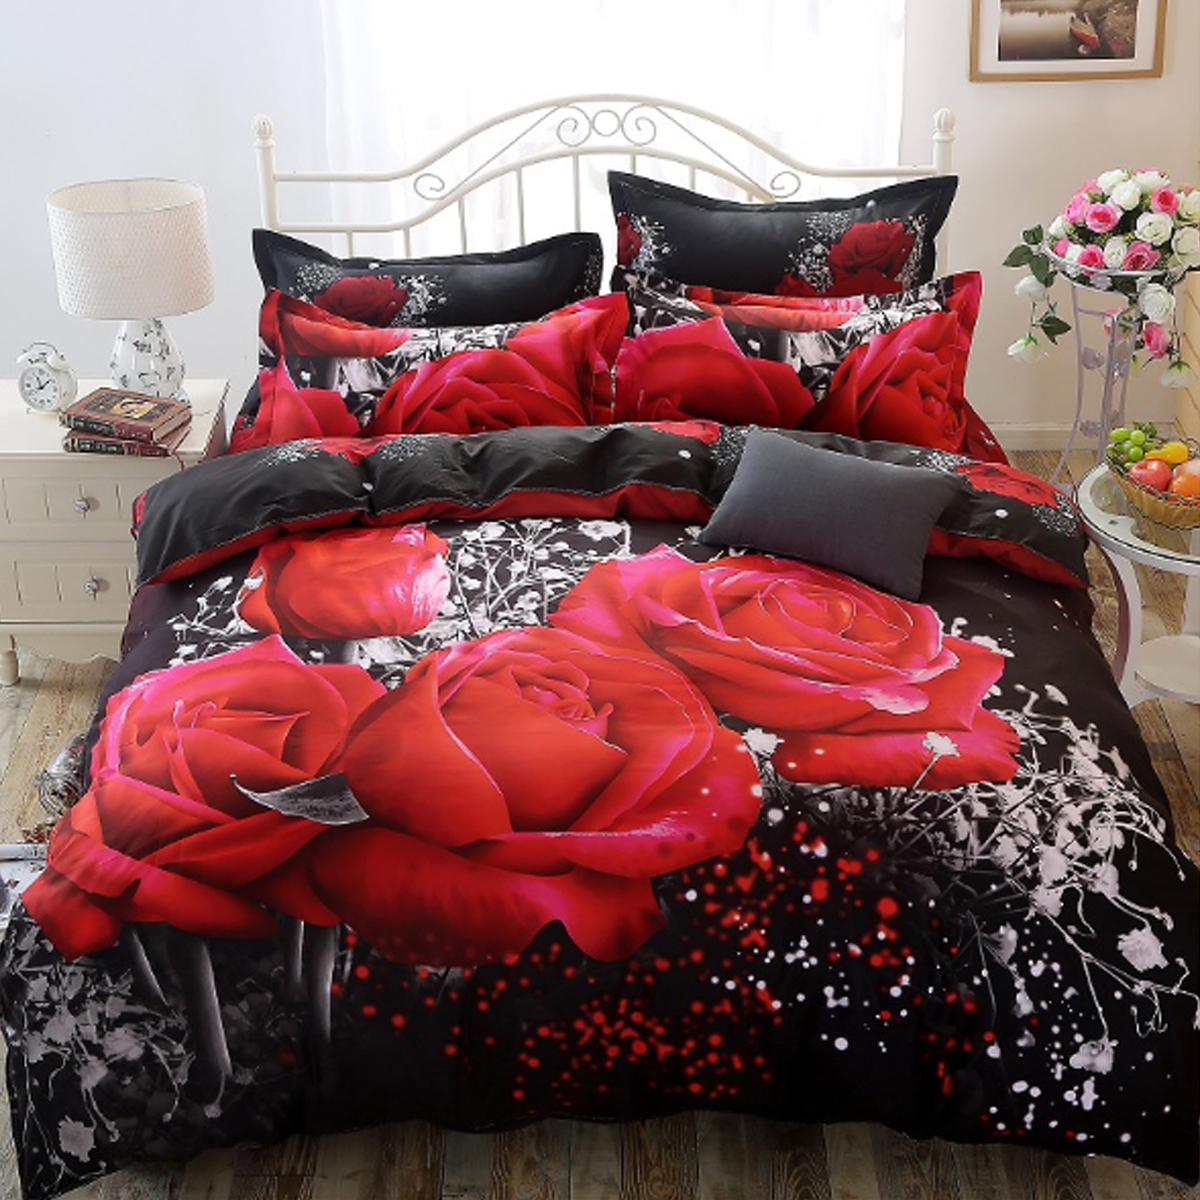 3D Printed Bedding Sets Bedclothes Red Rose Bed Sheet Cover With 2 Pillowcases